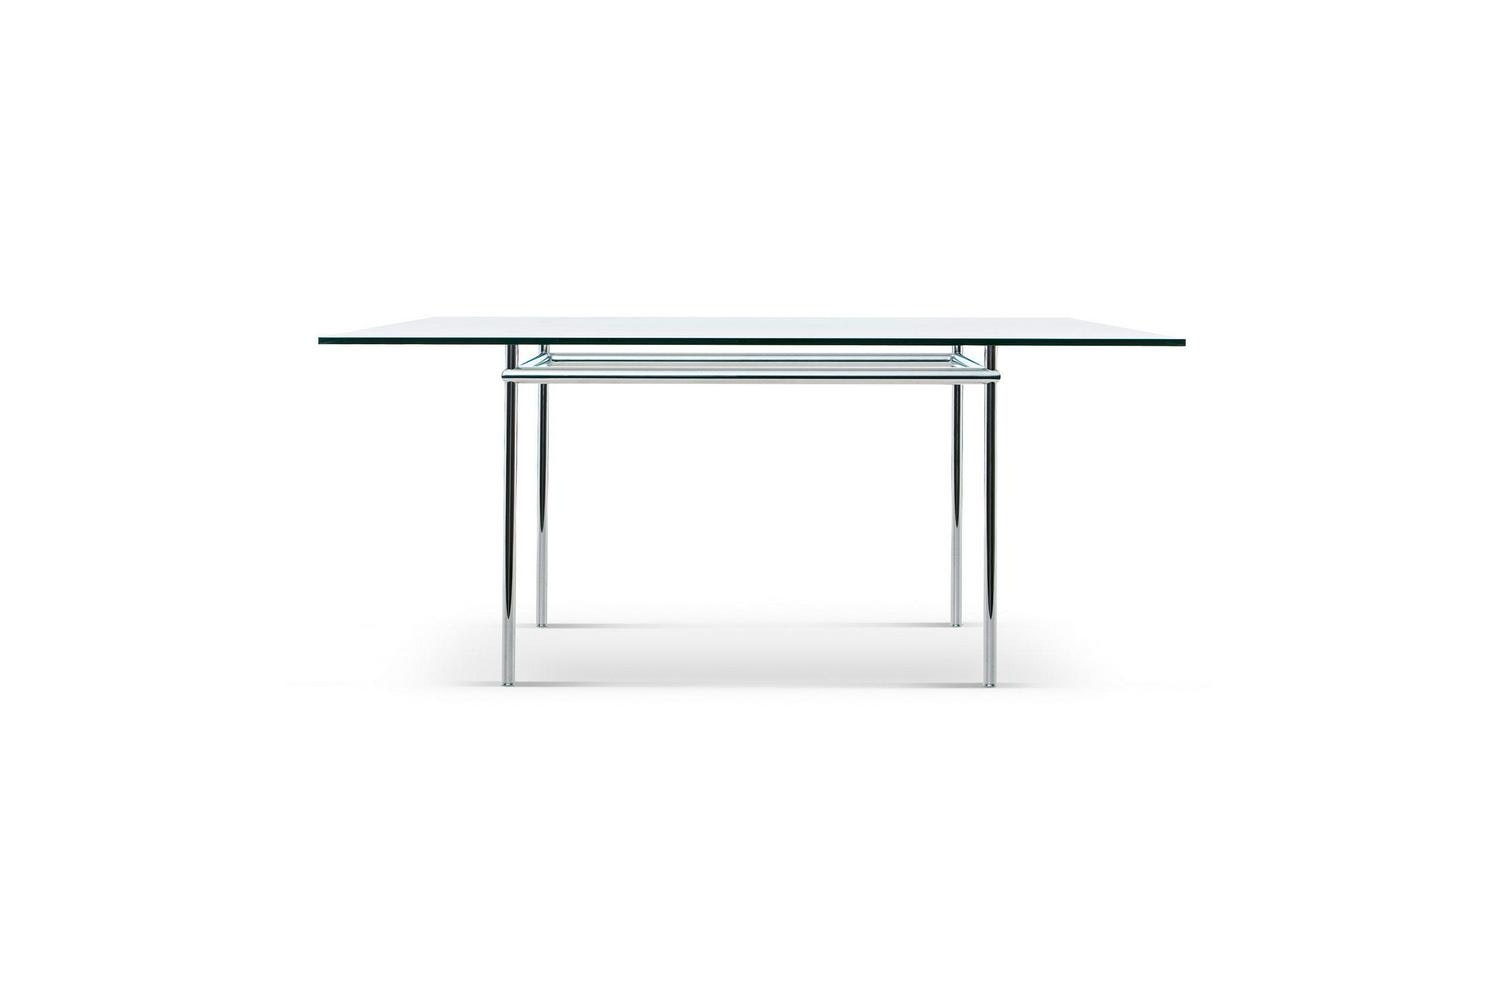 LC12 La Roche Table by Le Corbusier and Pierre Jeanneret for Cassina